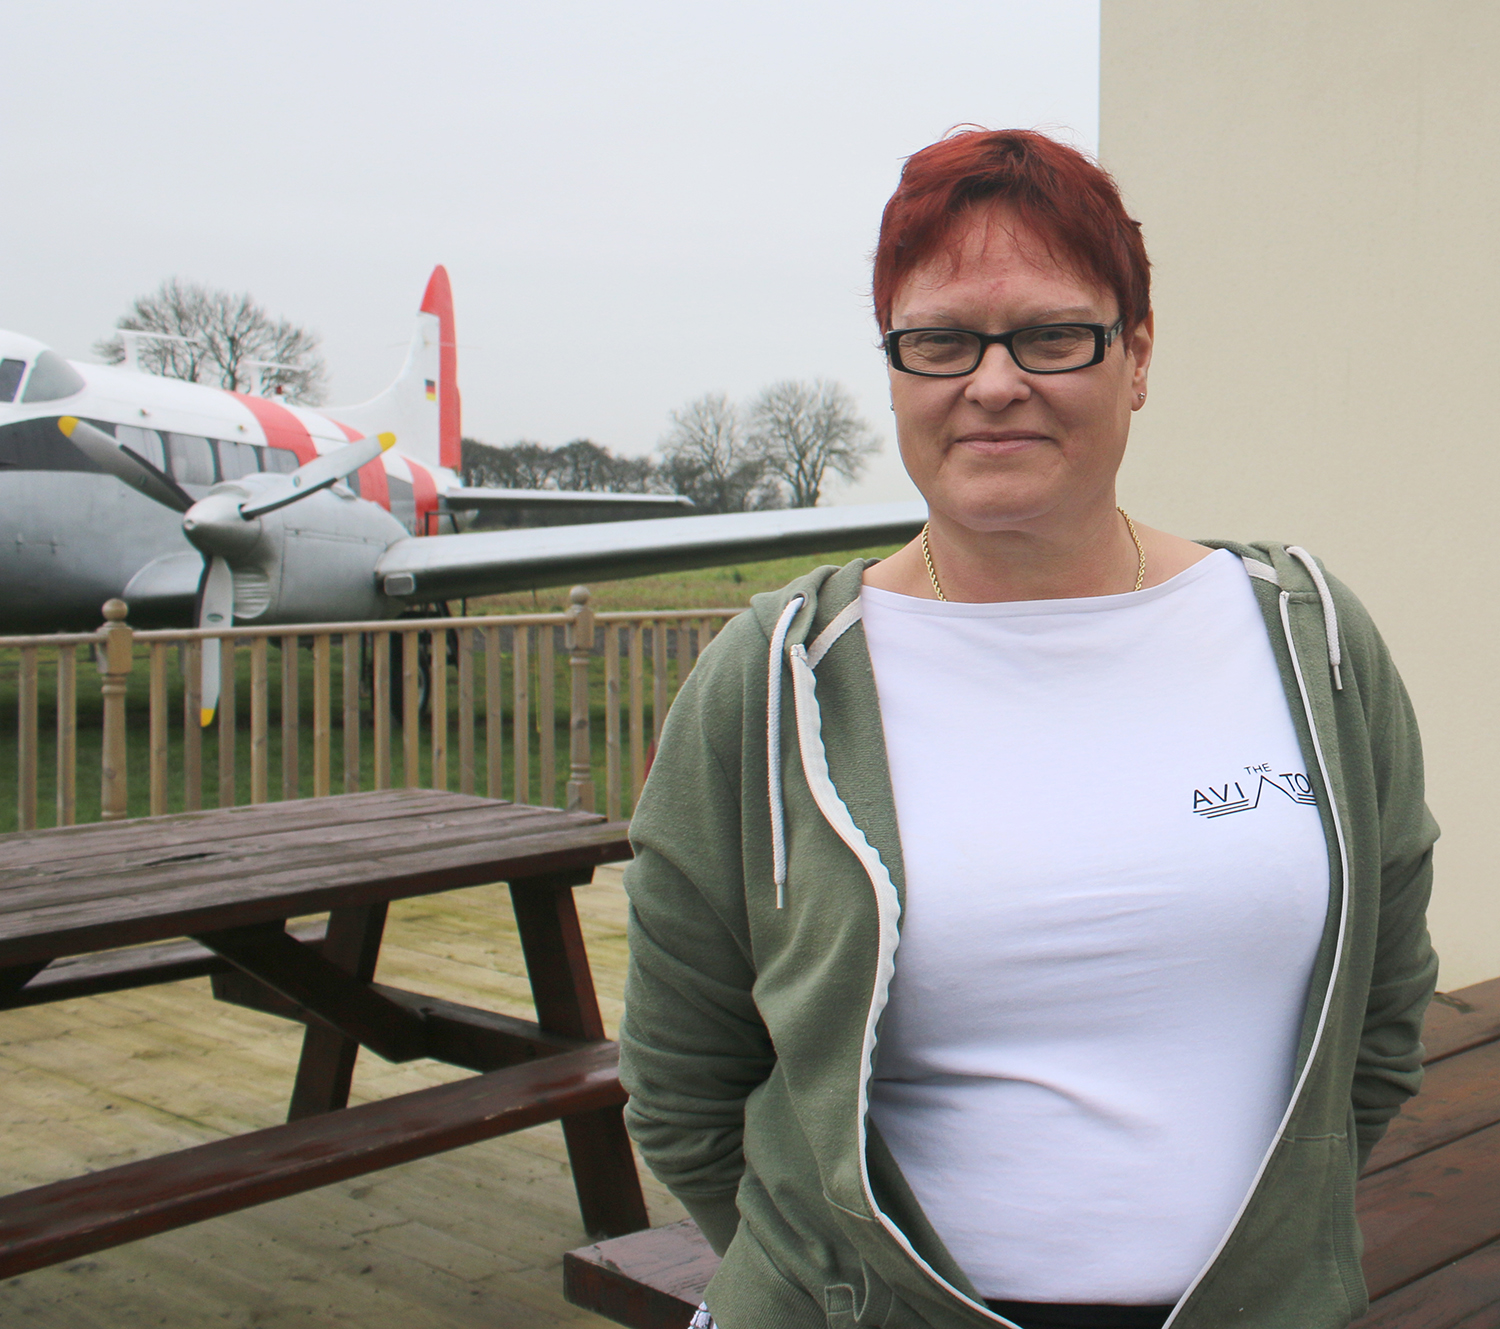 Newtonian Opens Cafe at Fishburn Airfield